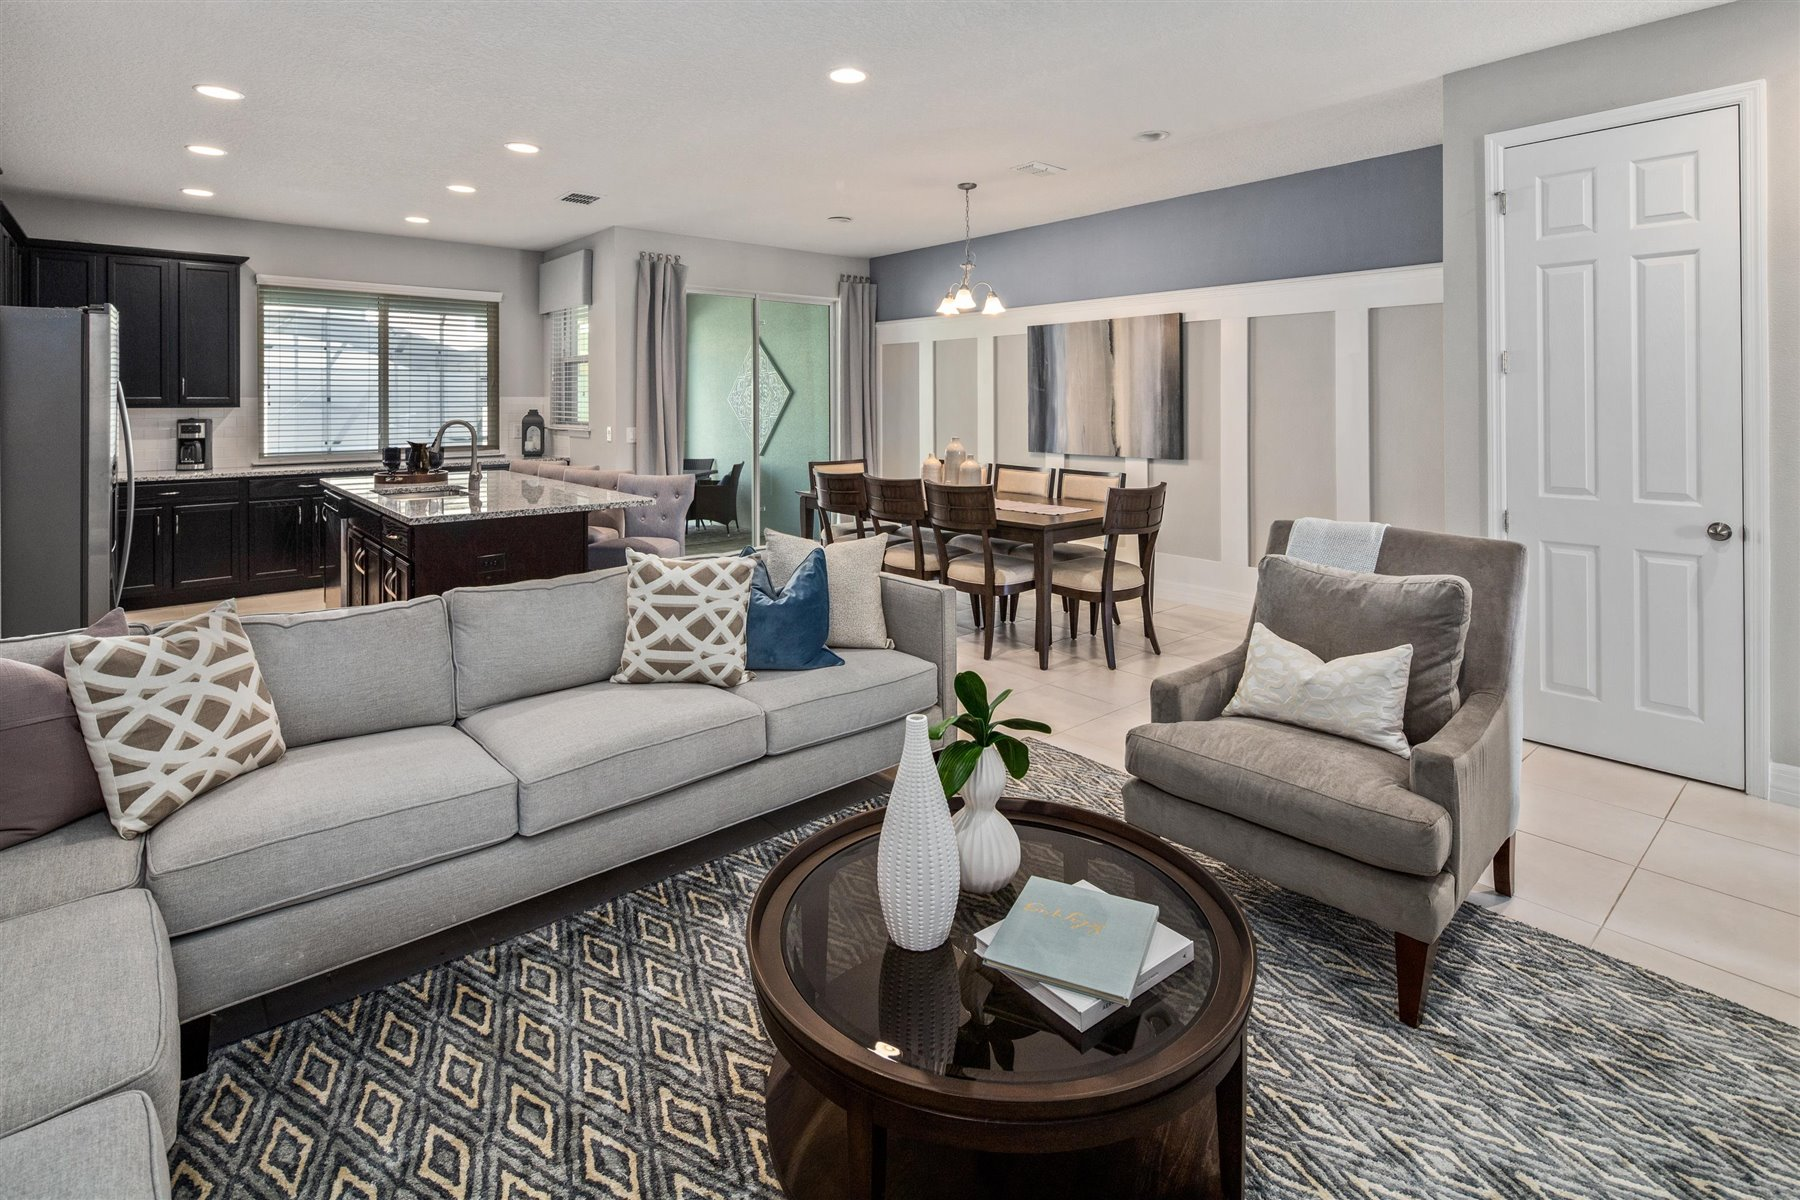 Clearwater Plan Greatroom at Solara Resort in Kissimmee Florida by Mattamy Homes